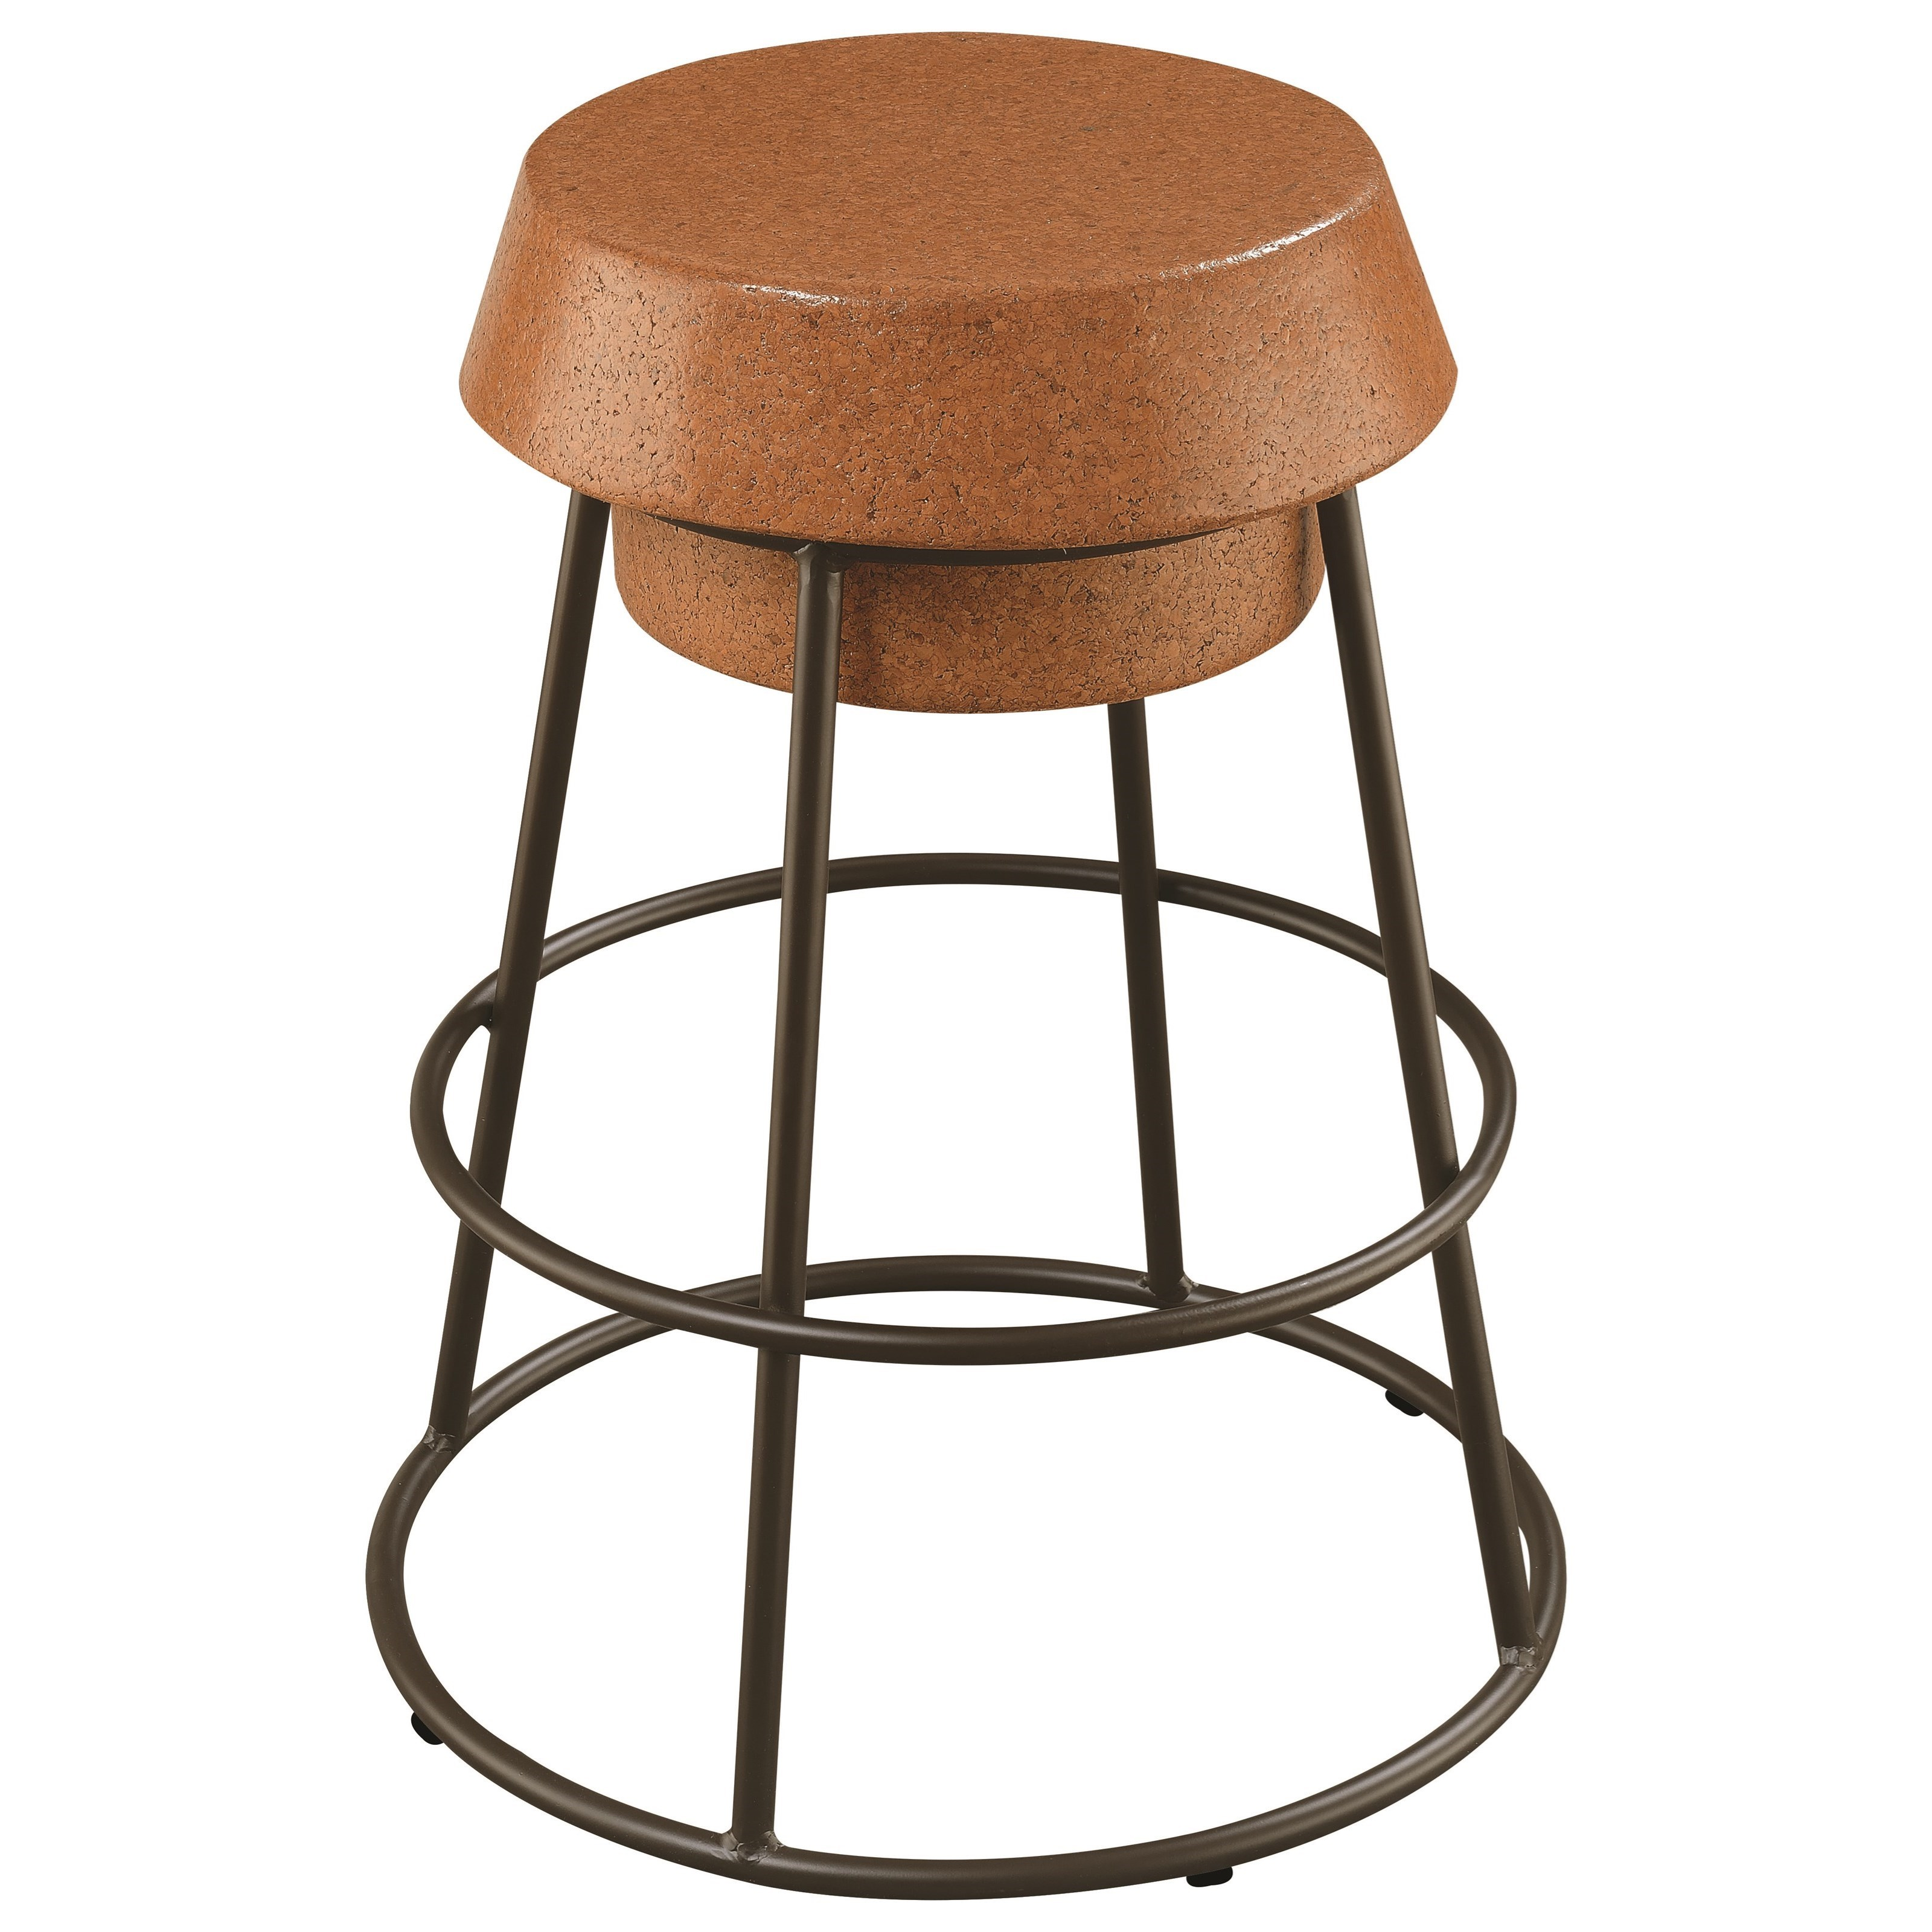 Coaster Dining Chairs And Bar Stools Counter Height Stool   Item Number:  100907